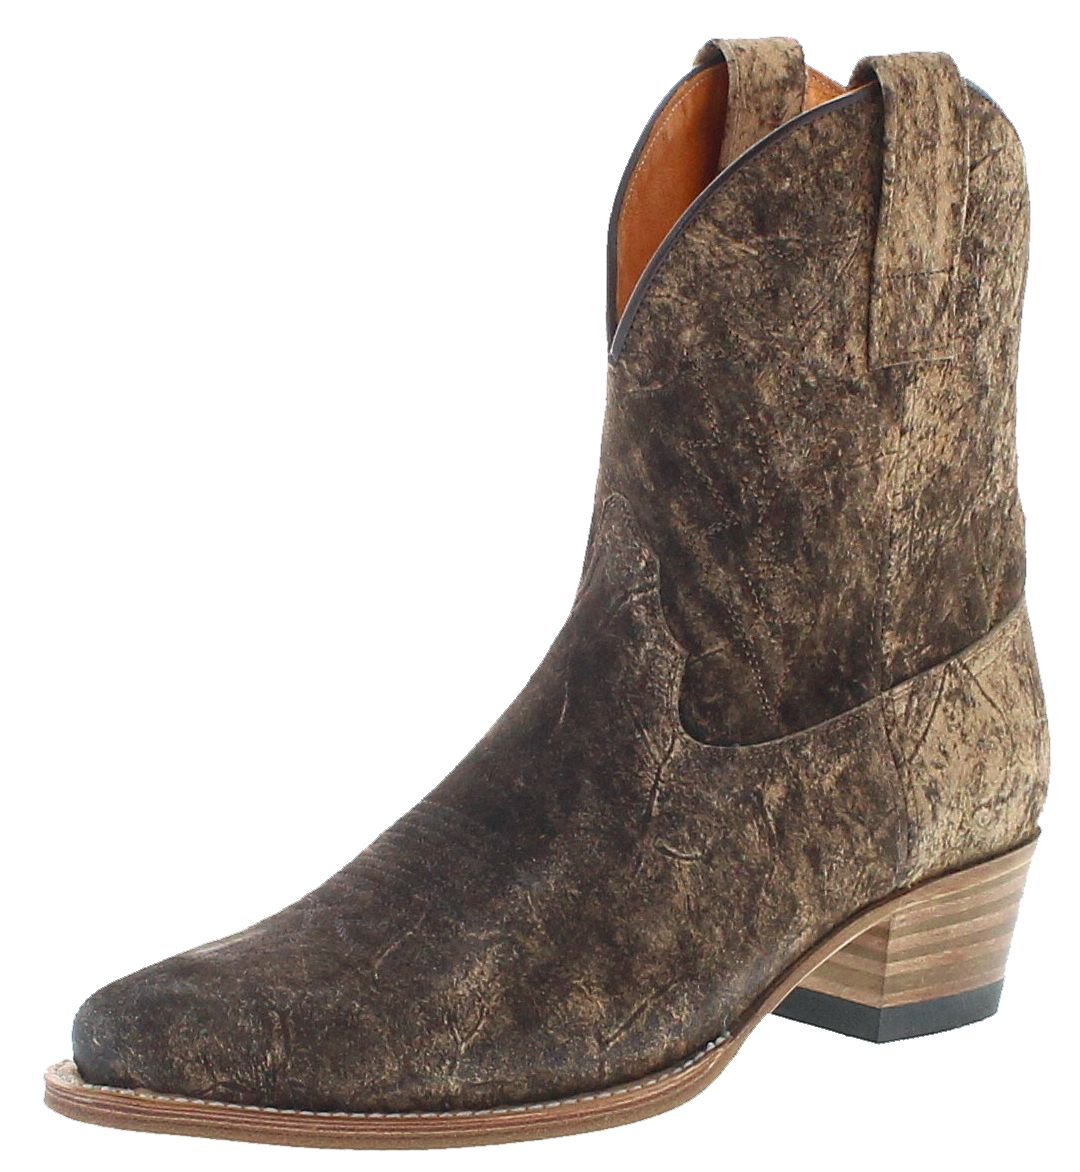 Sendra Boots 16367 Animal Marron Ladies Western Bootee - brown